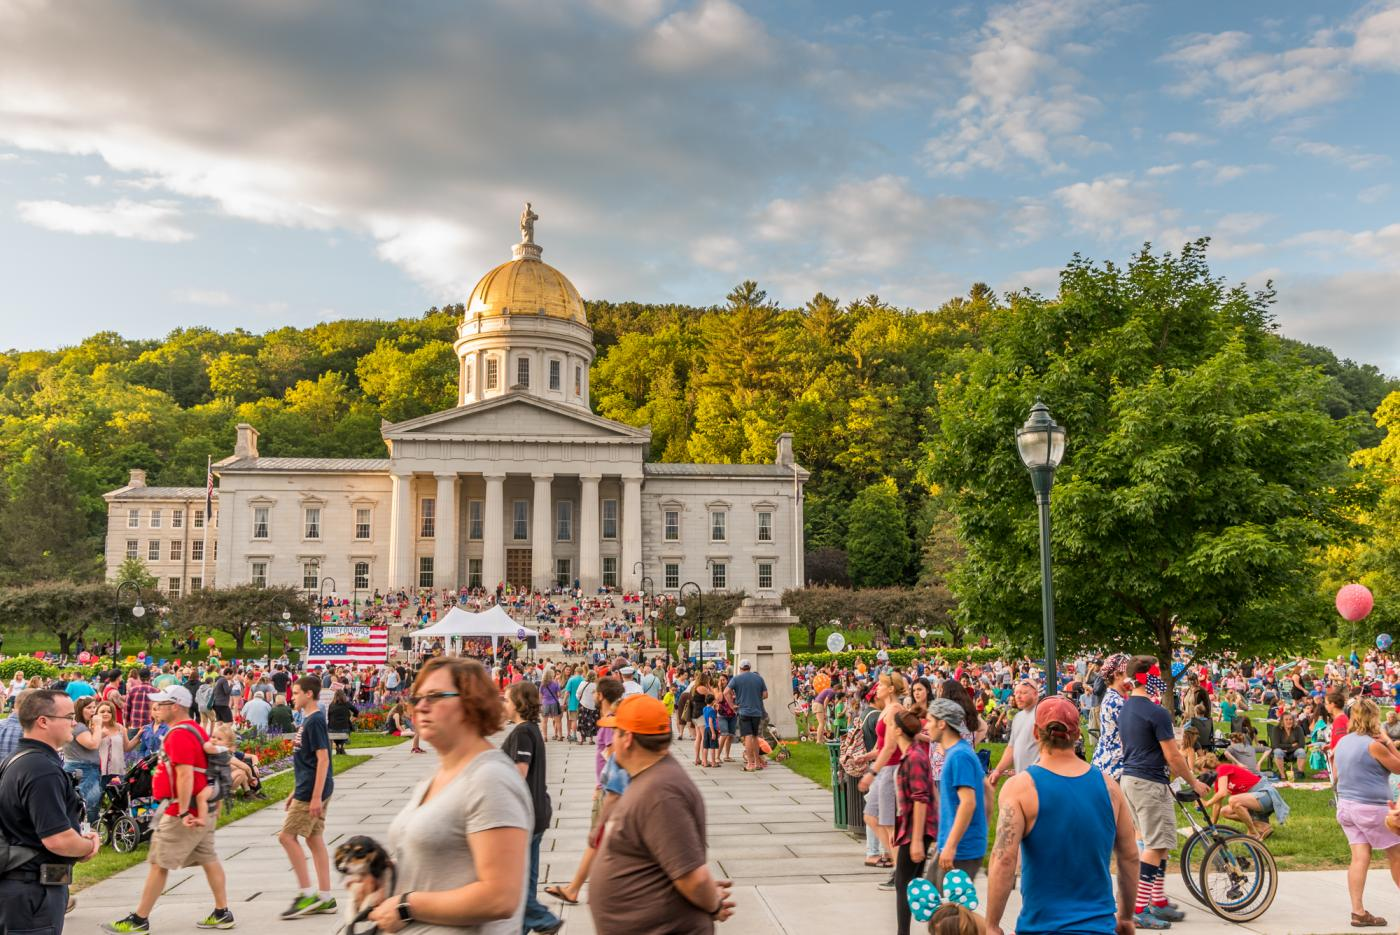 Image of a crowd of people on a warm sunny day with Vermont's capitol building in the background.